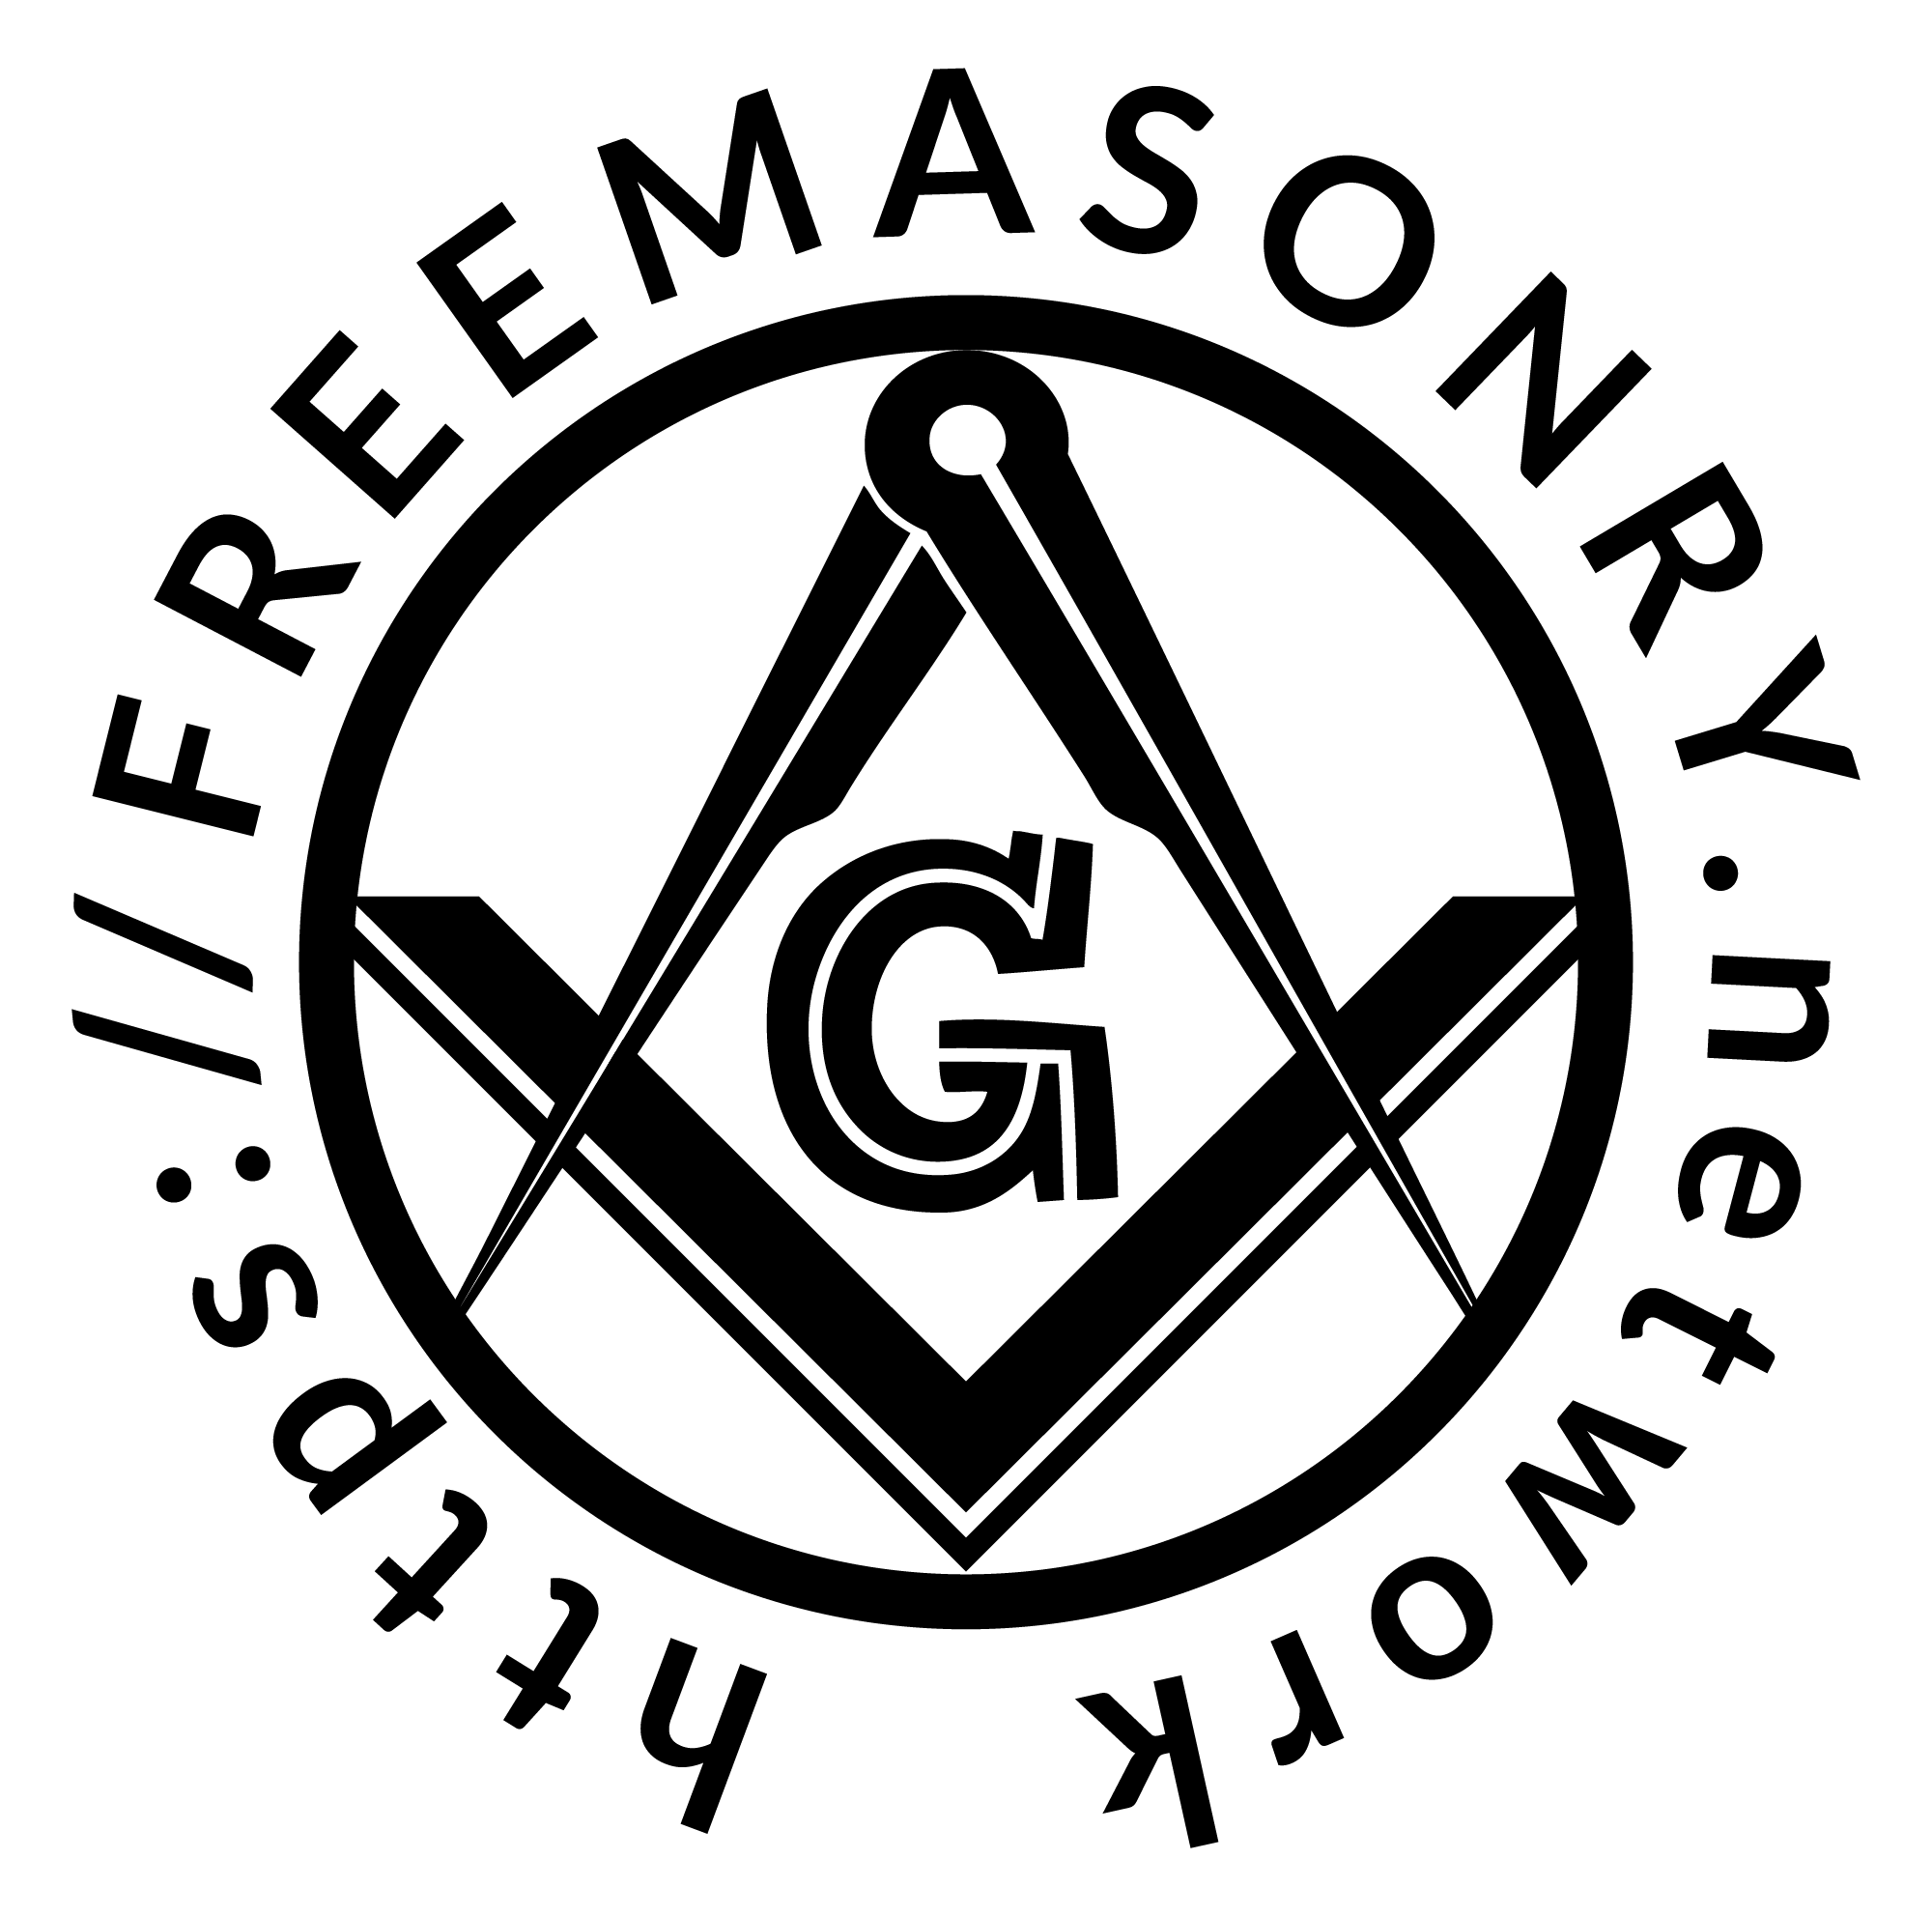 FREEMASONRY AS A PROGRESSIVE MORAL SCIENCE